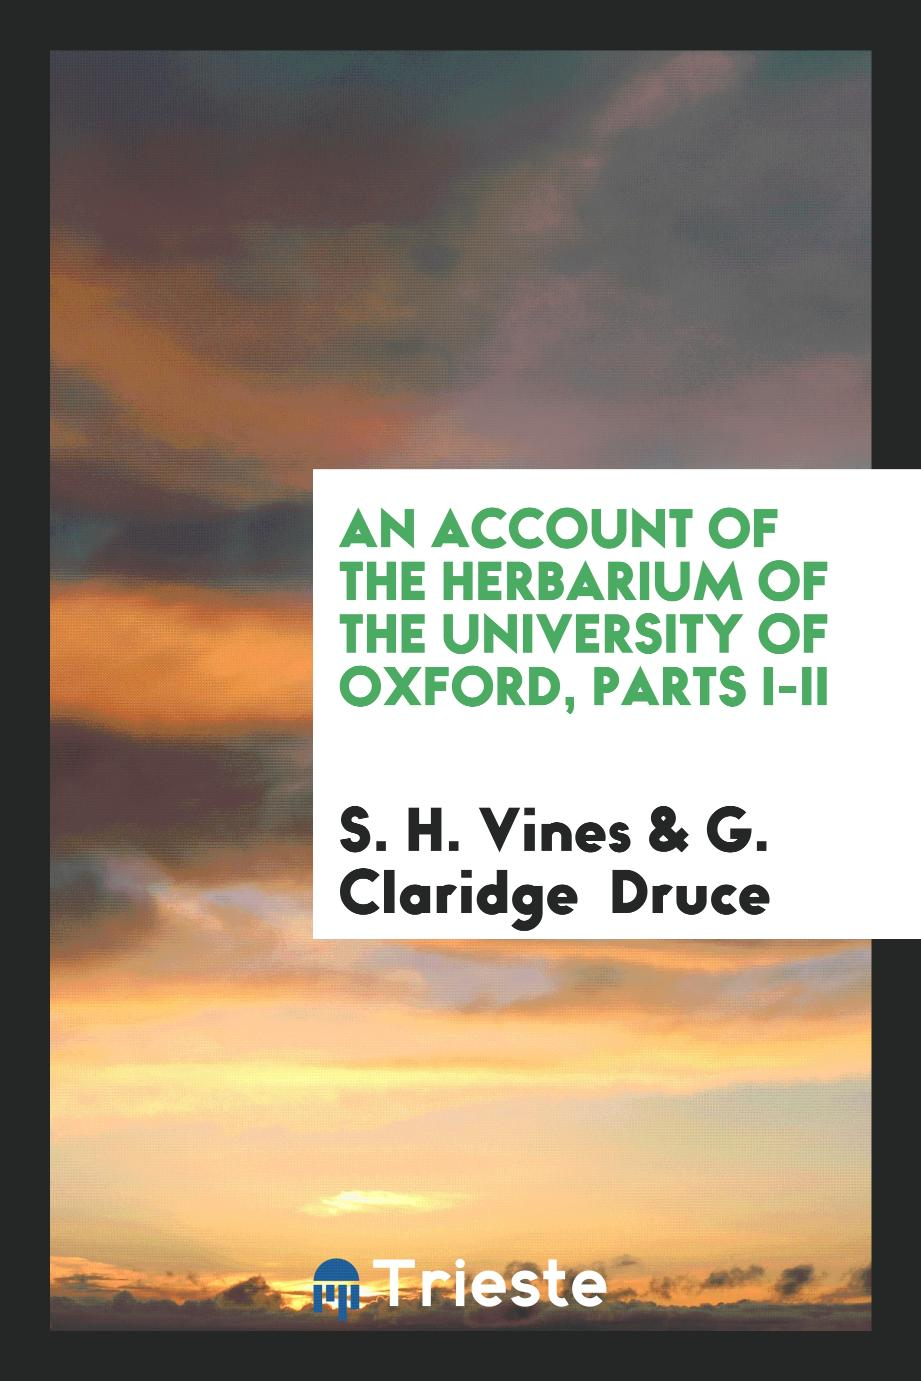 An account of the herbarium of the University of Oxford, Parts I-II